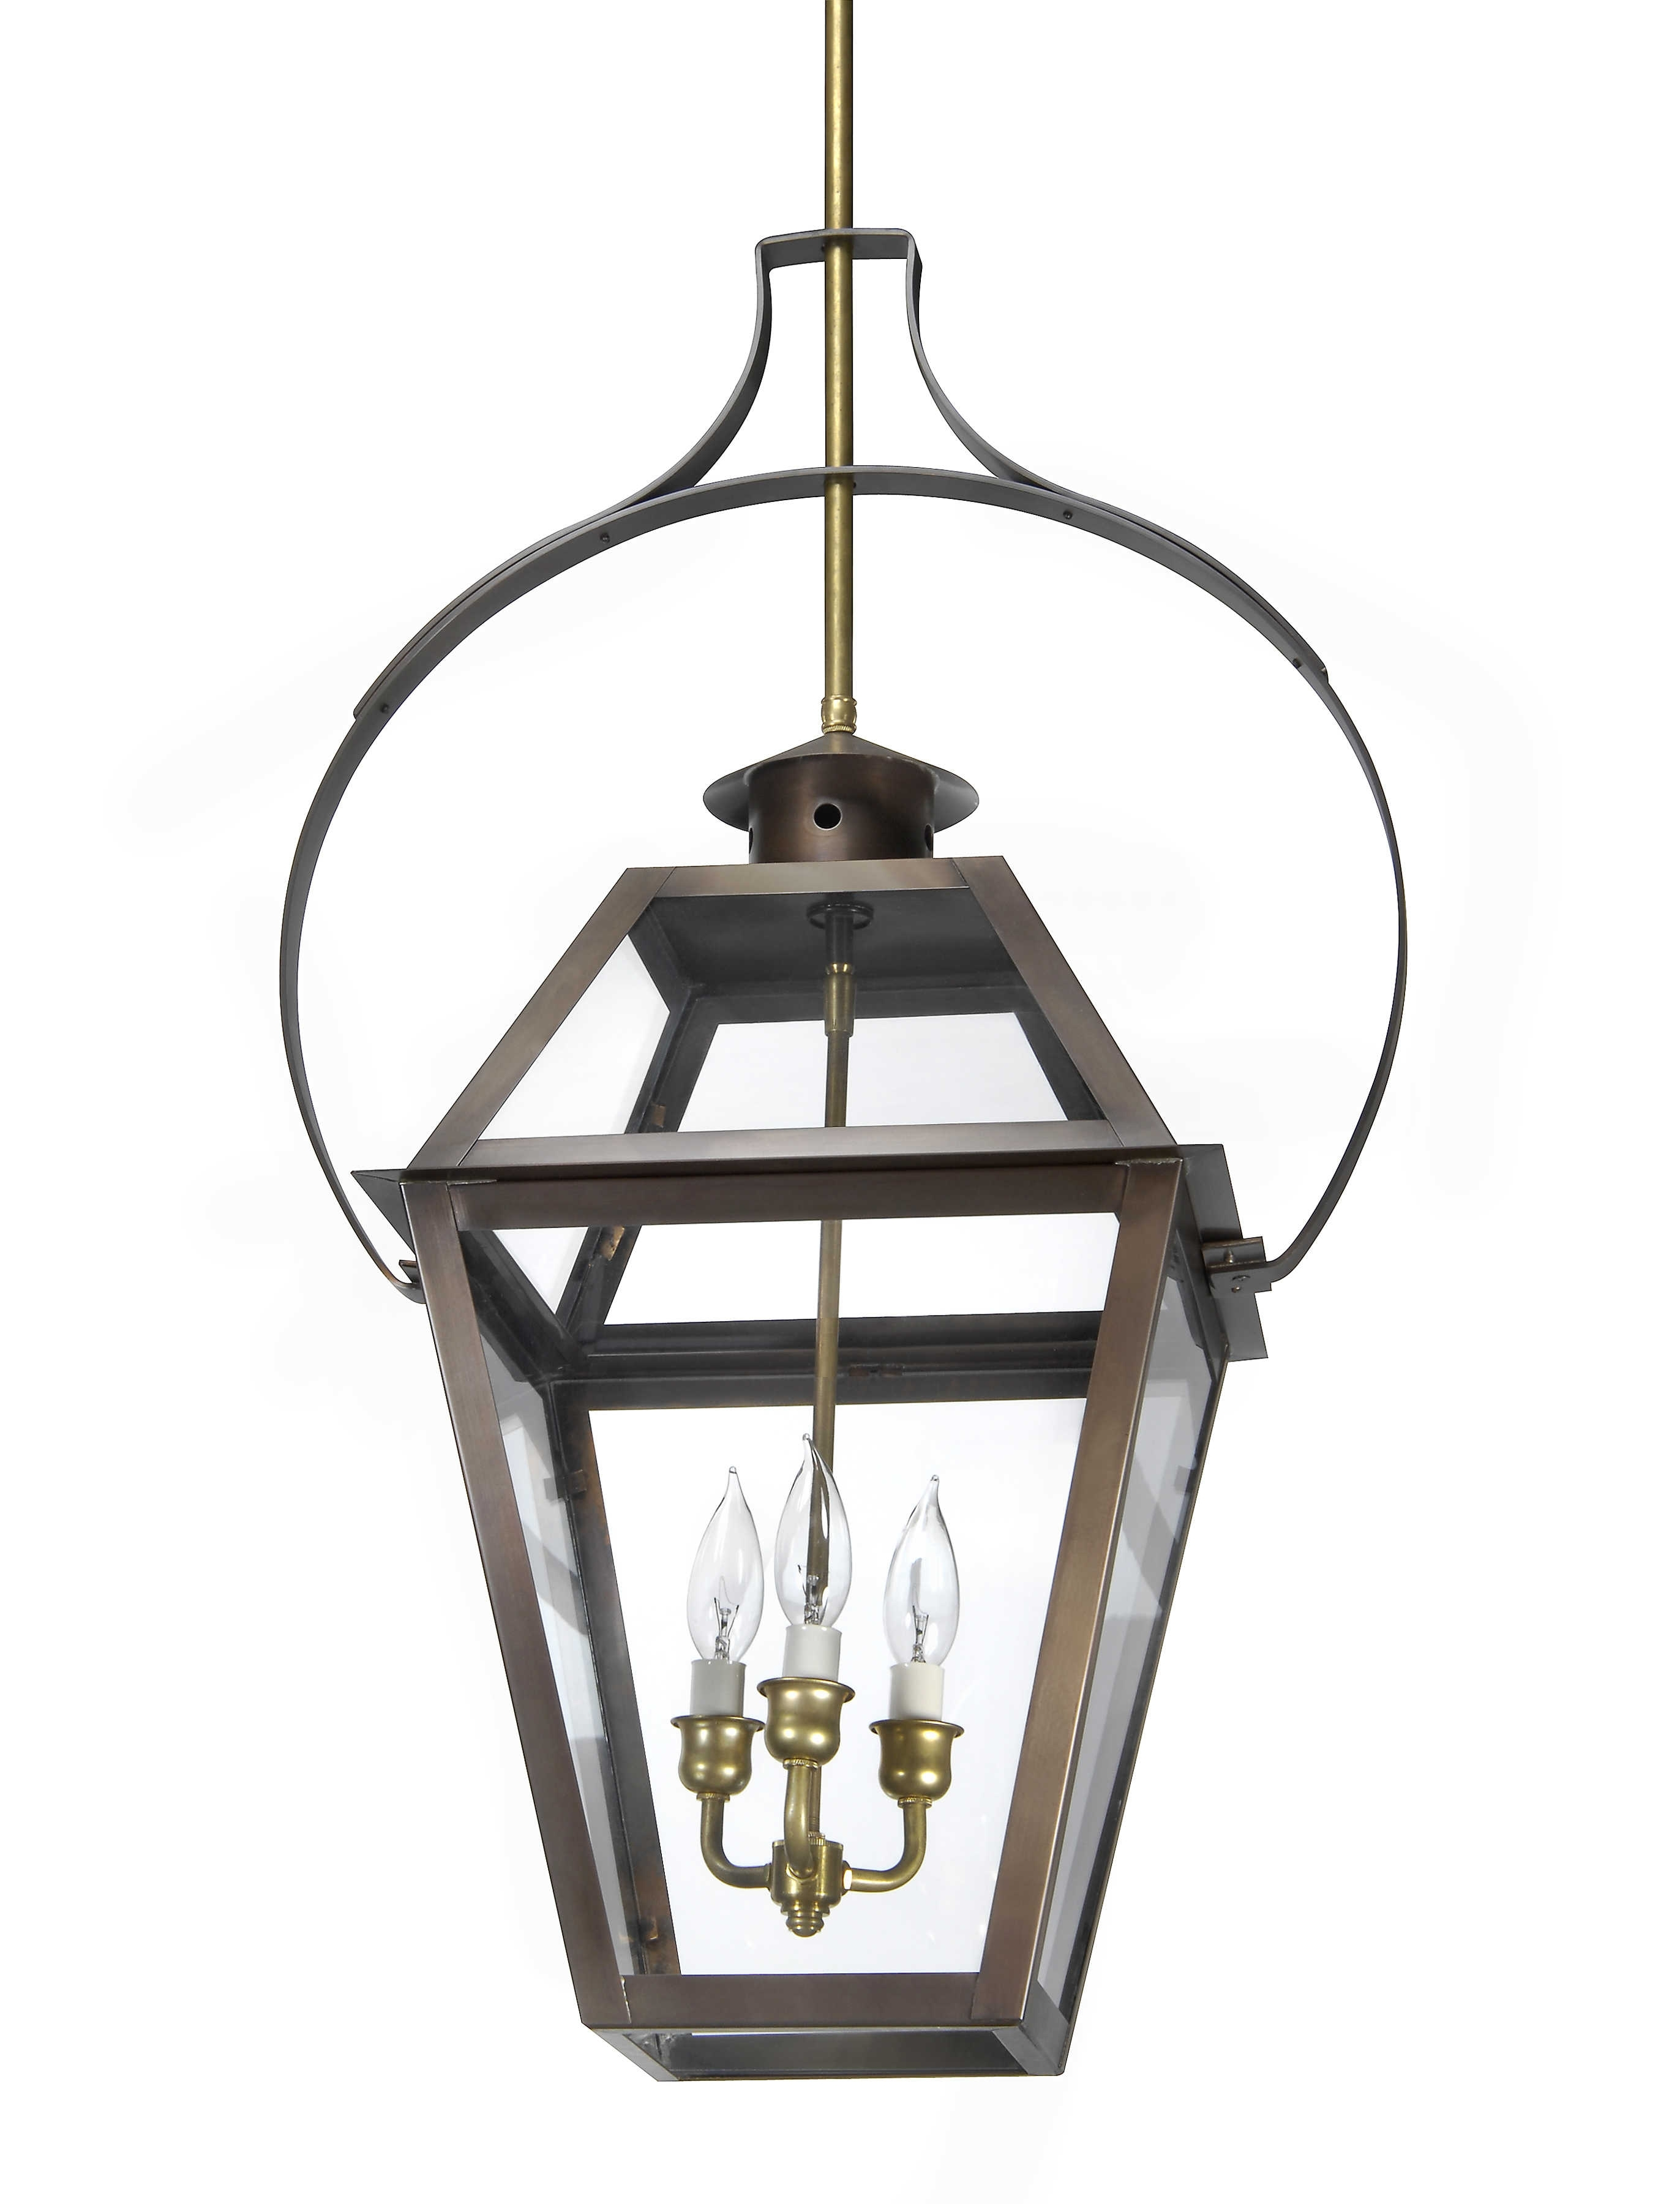 19Th Century High Fashion Lanterns With Outdoor Electric Lanterns (View 1 of 20)